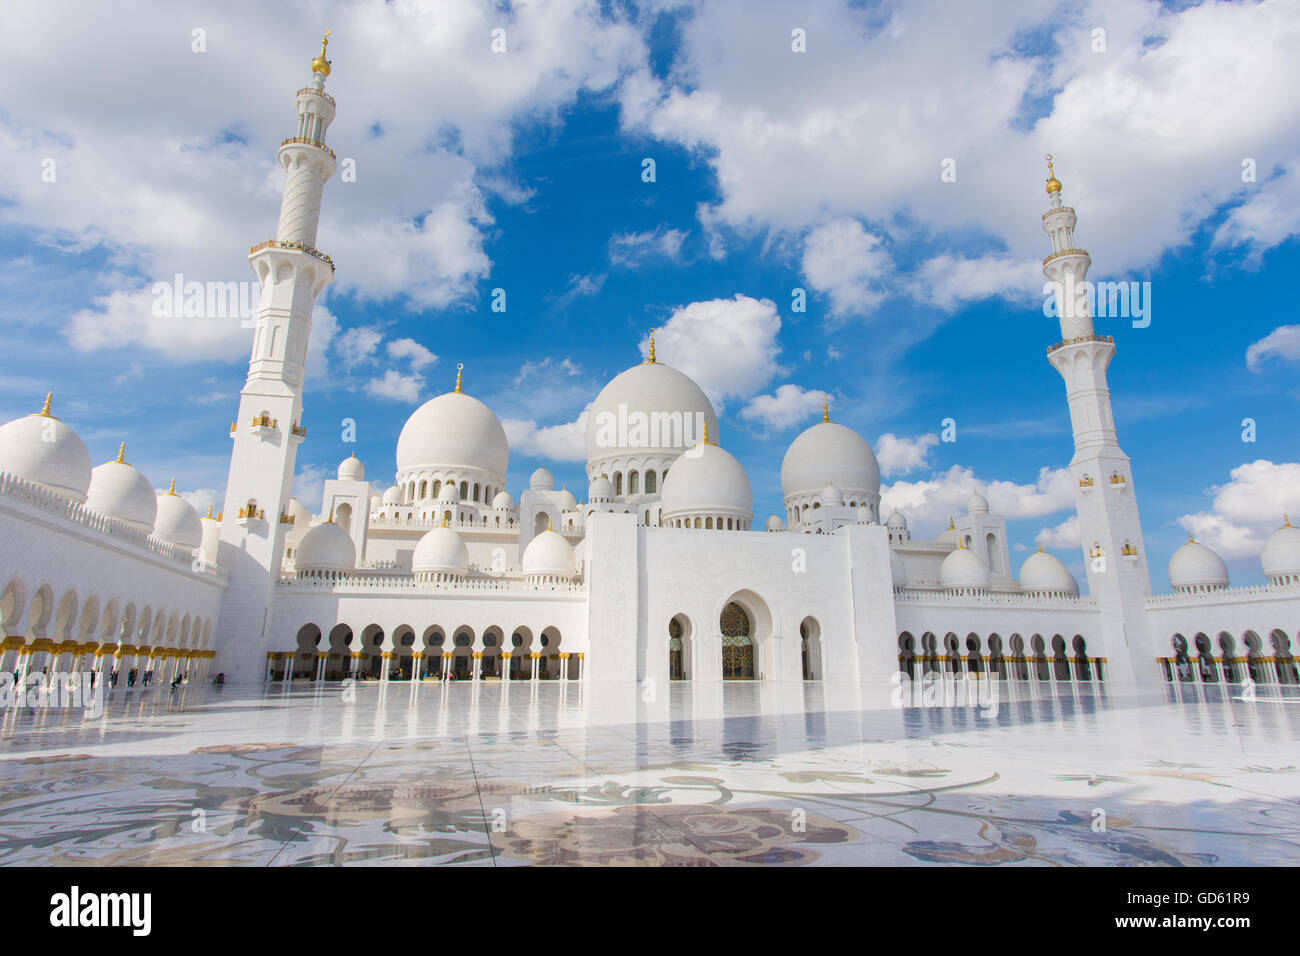 Sheikh Zayed Grand Mosque, Abu Dhabi, UAE. Built between 1996-2007. Design inspired by Persian, Mughal and Moorish - Stock Image